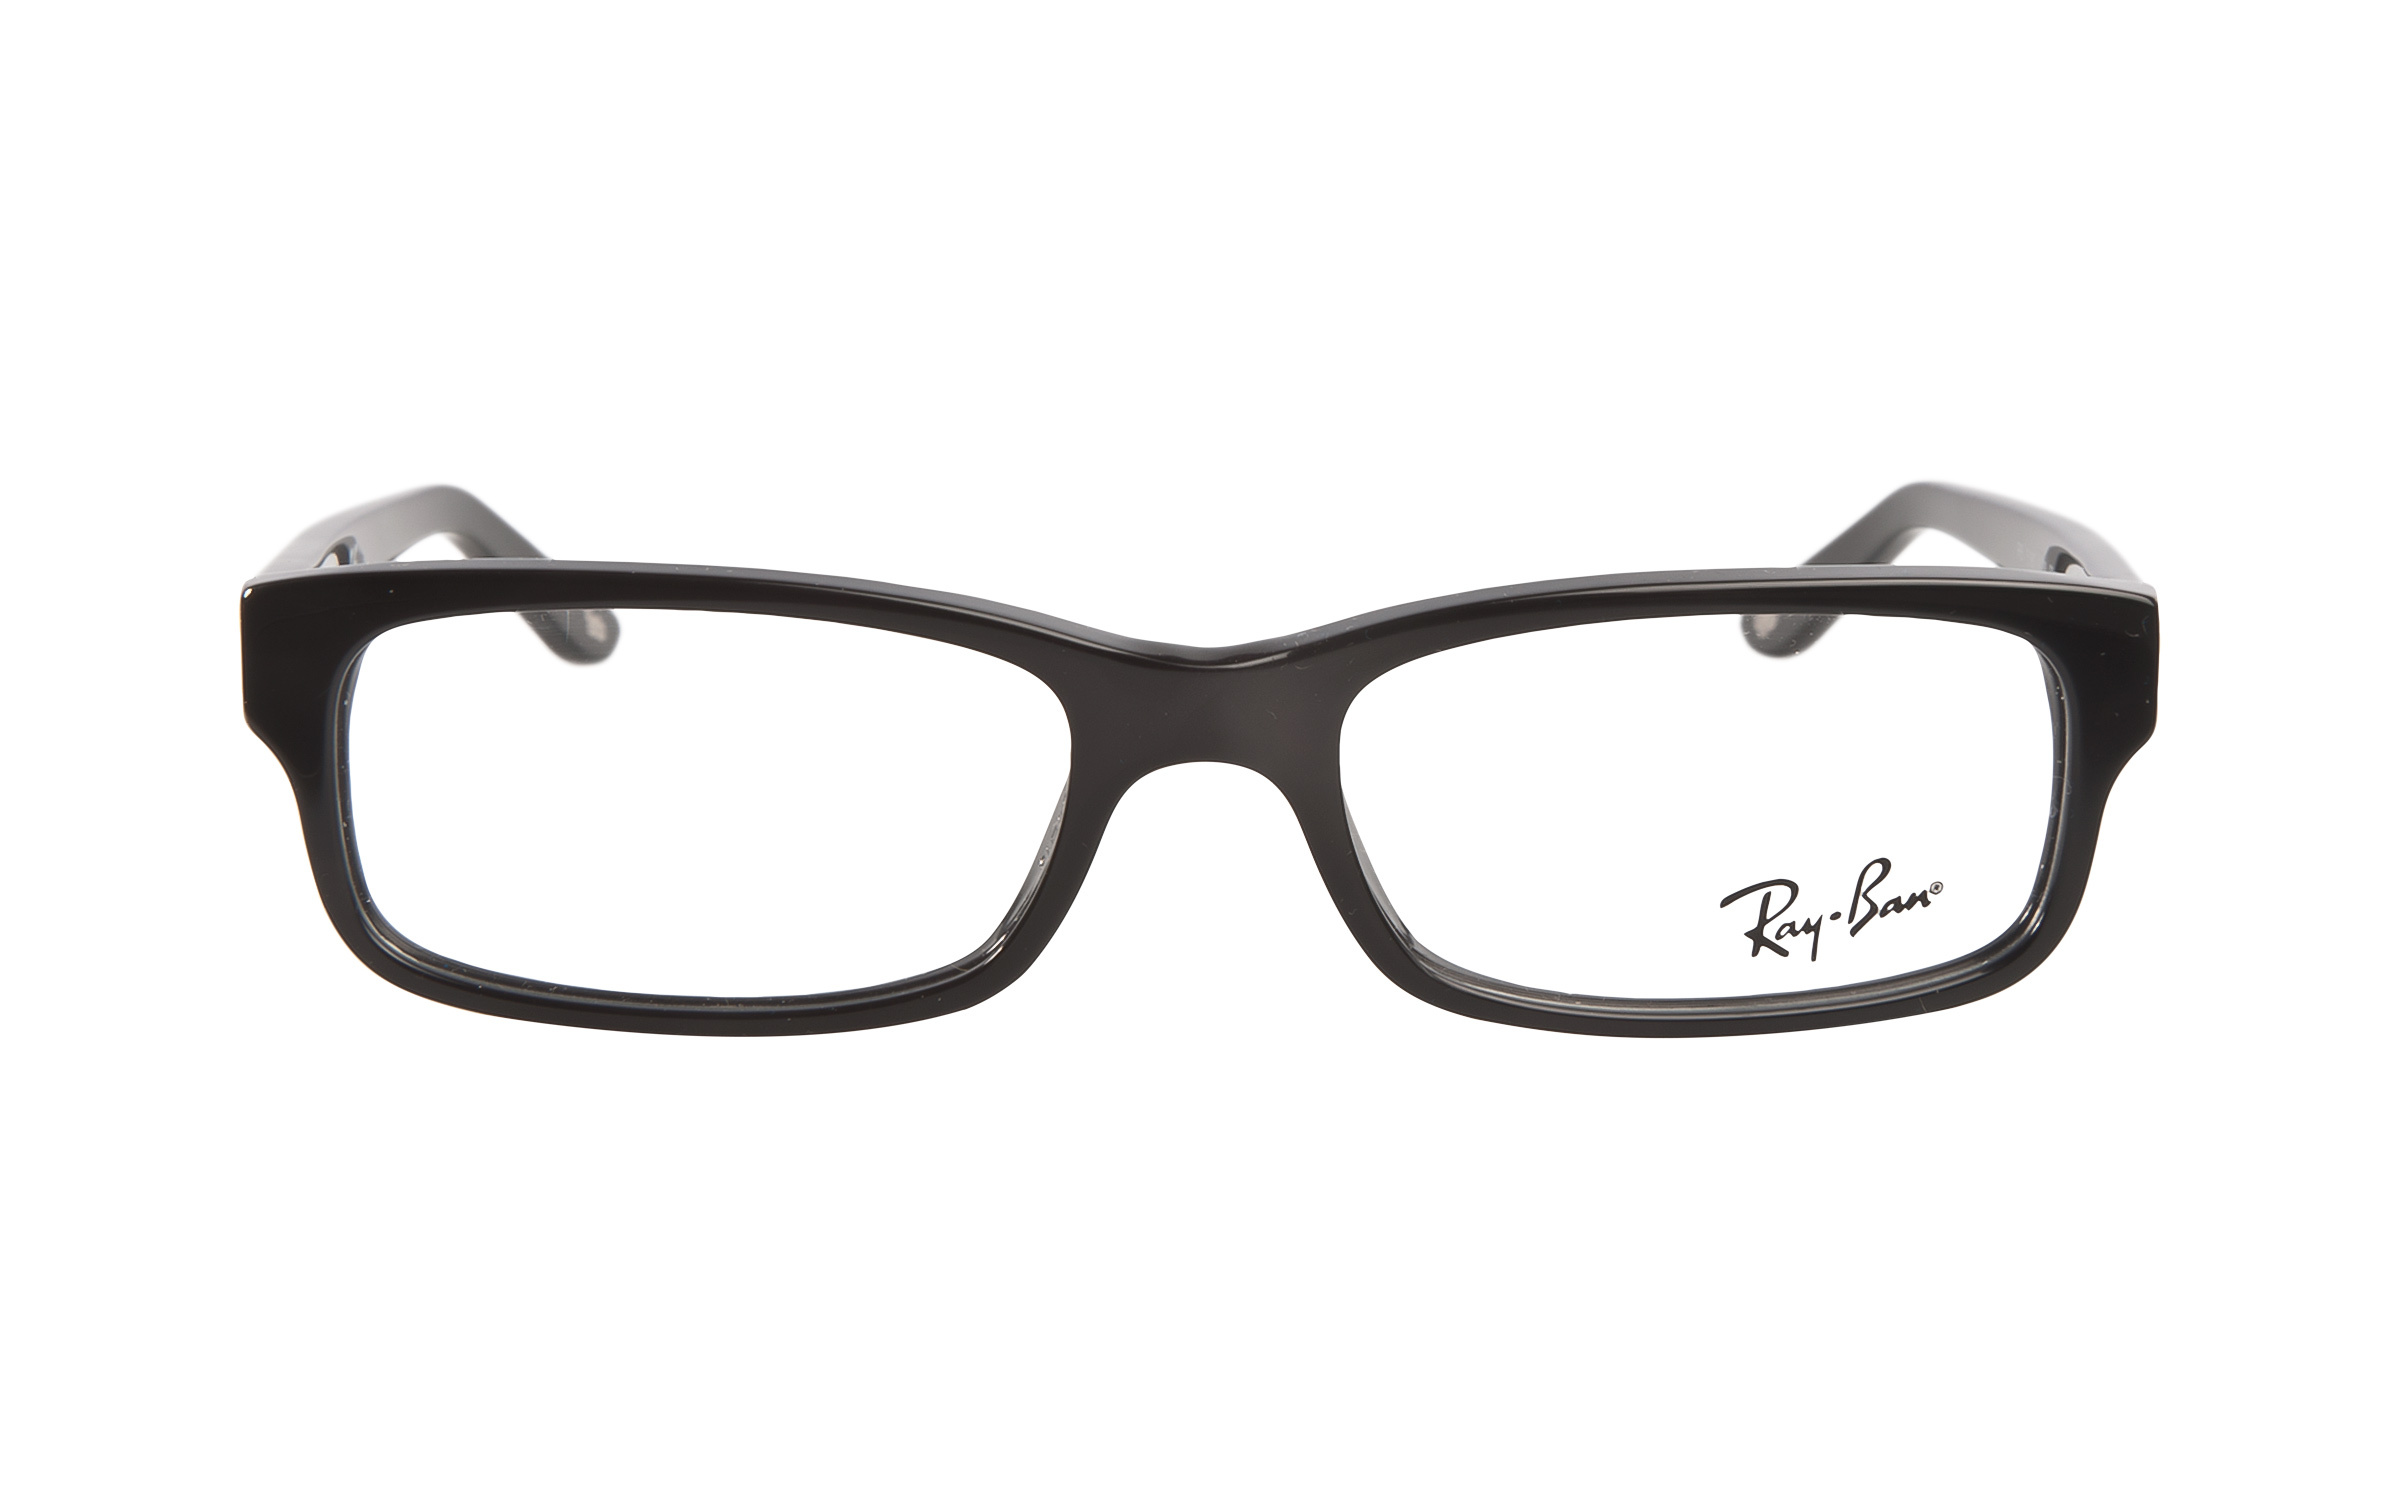 RayBan_Glasses_Rectangular_Black_Acetate_Online_Coastal